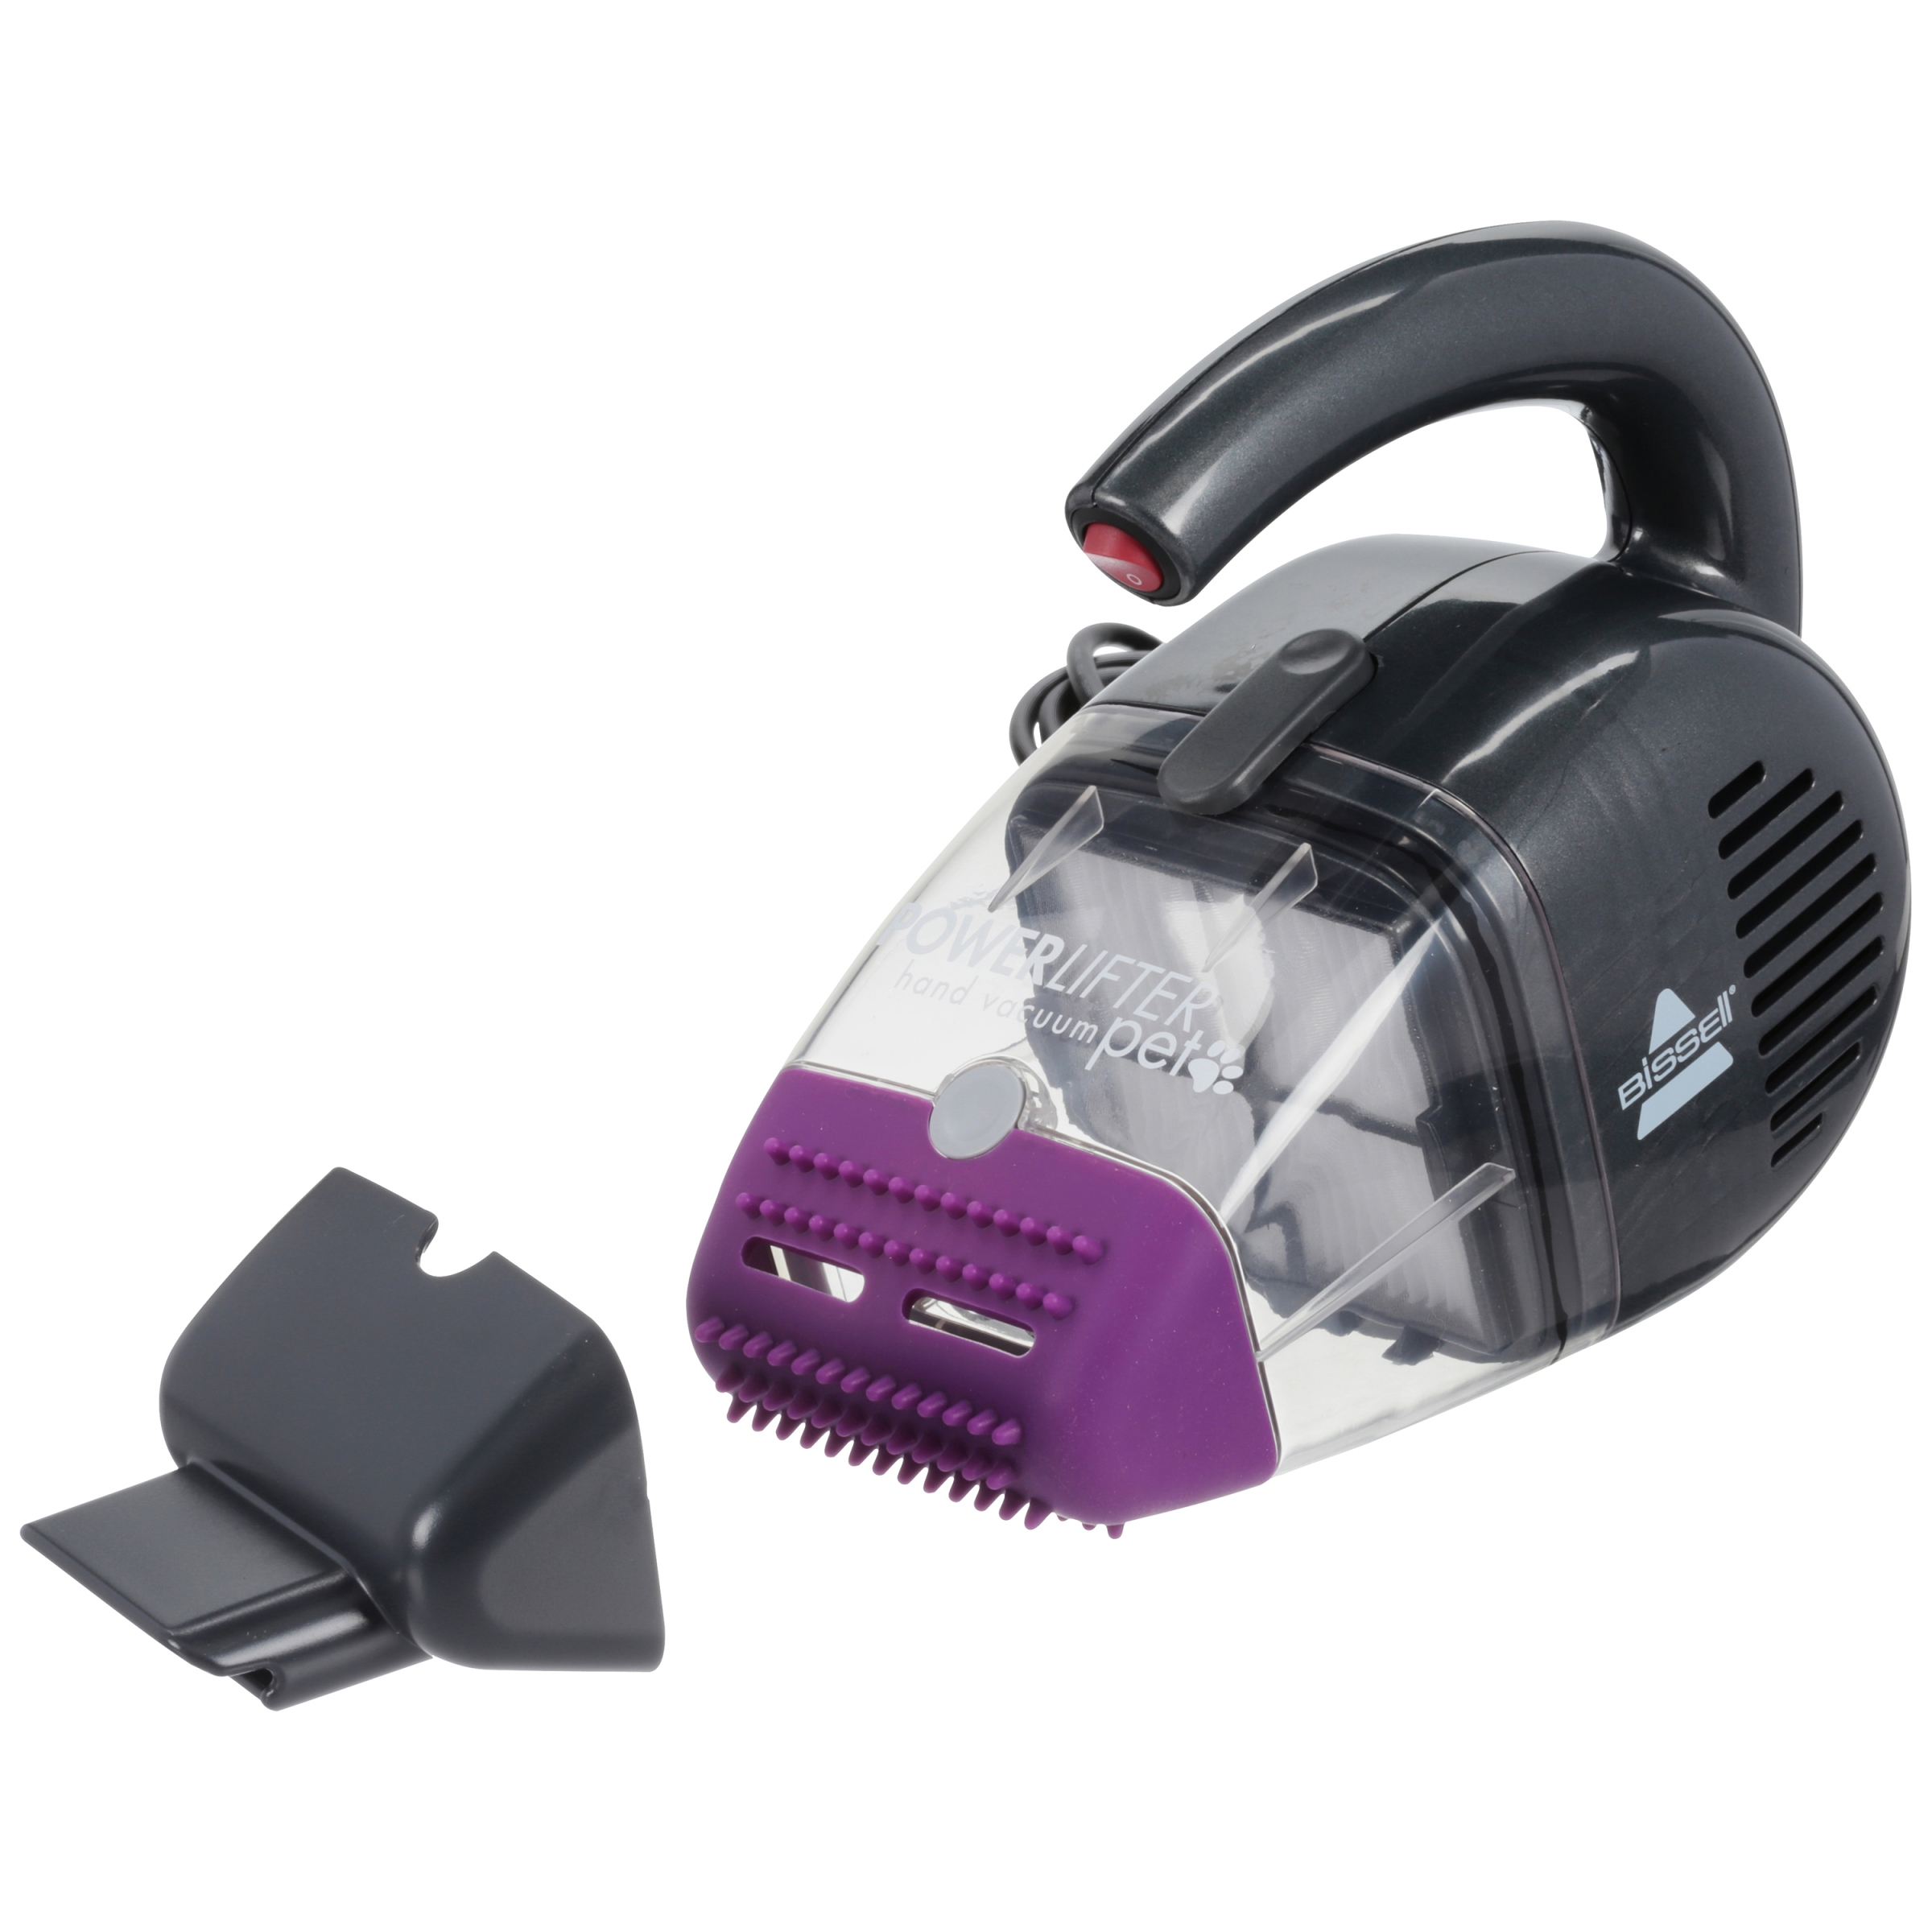 Bissell PowerLifter Pet Corded Hand Vacuum, 33A1W